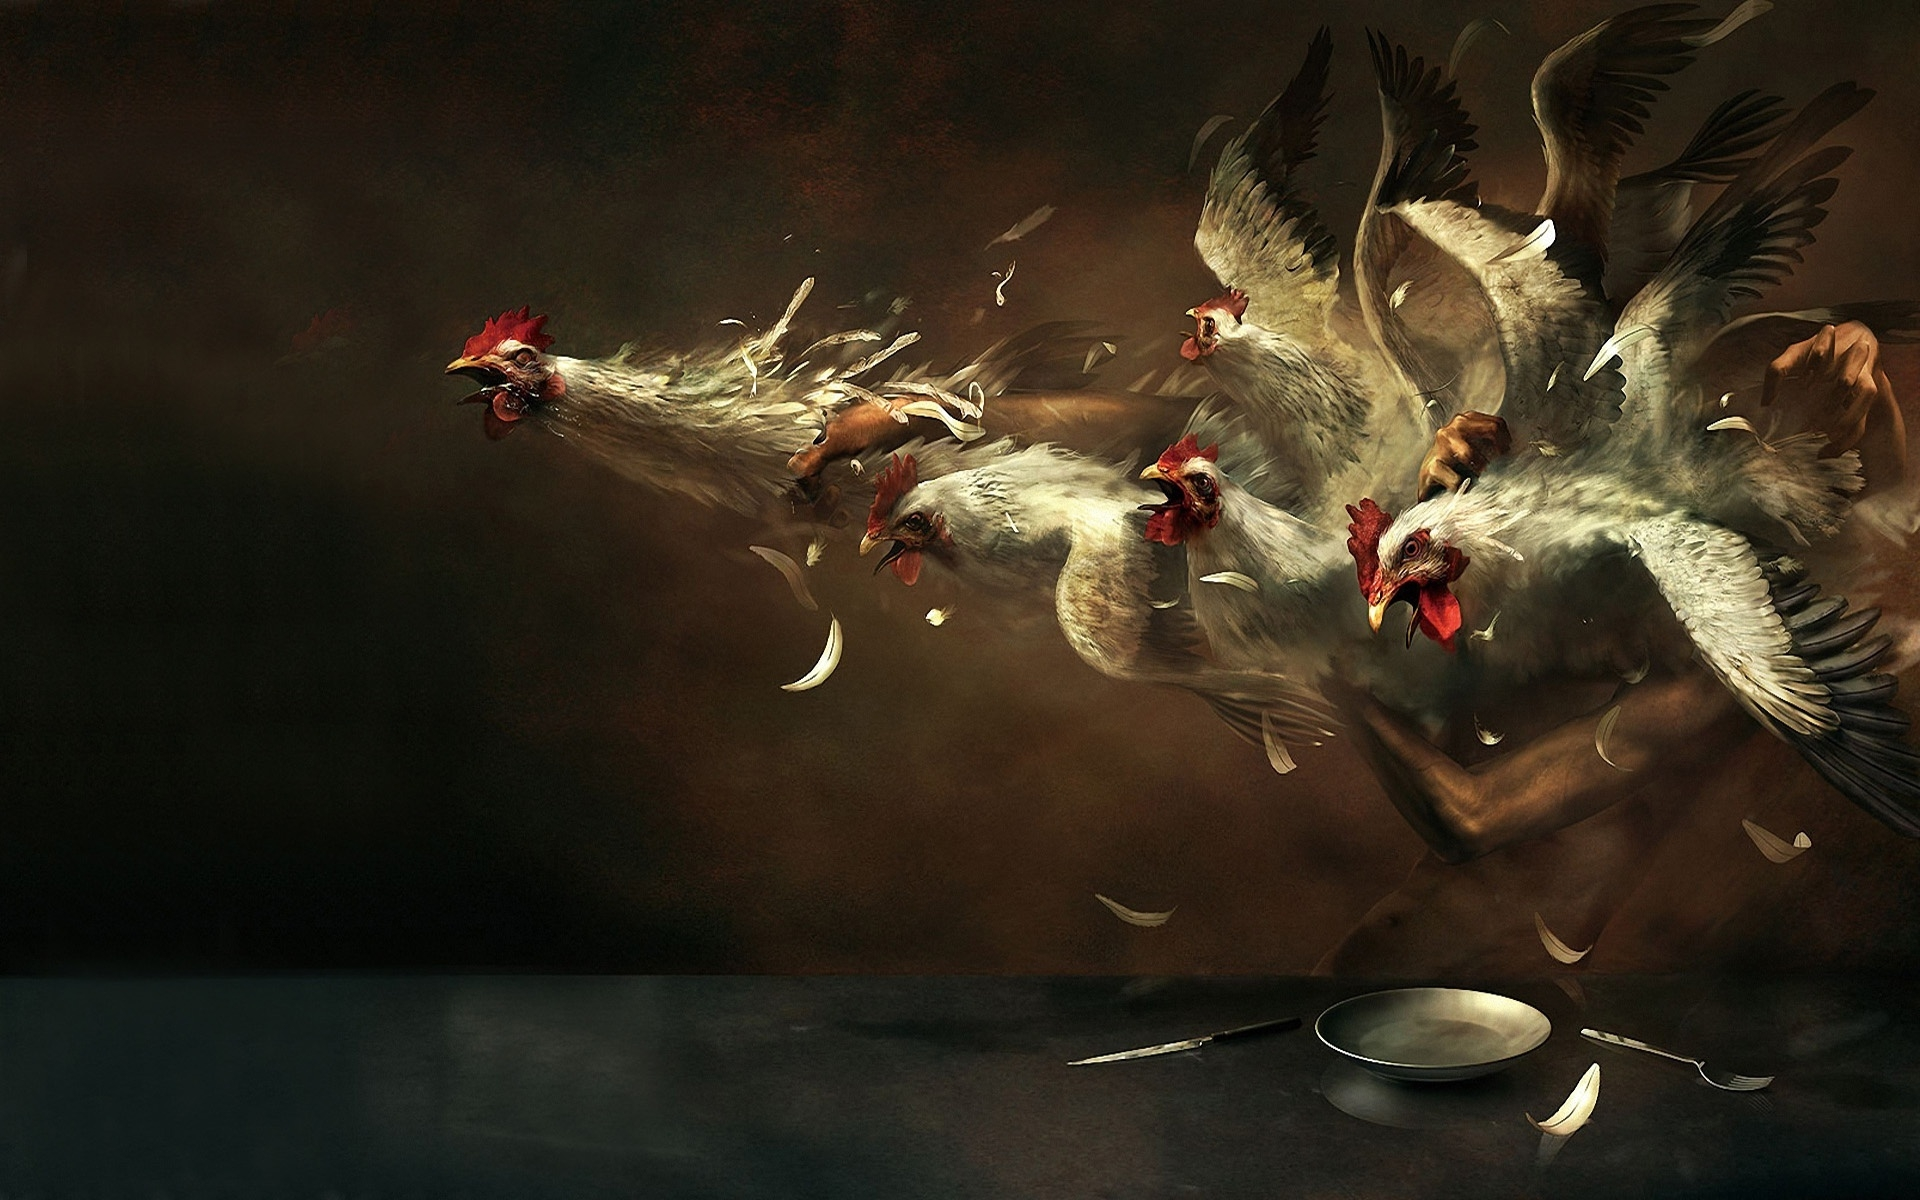 Crazy Chickens for 1920 x 1200 widescreen resolution